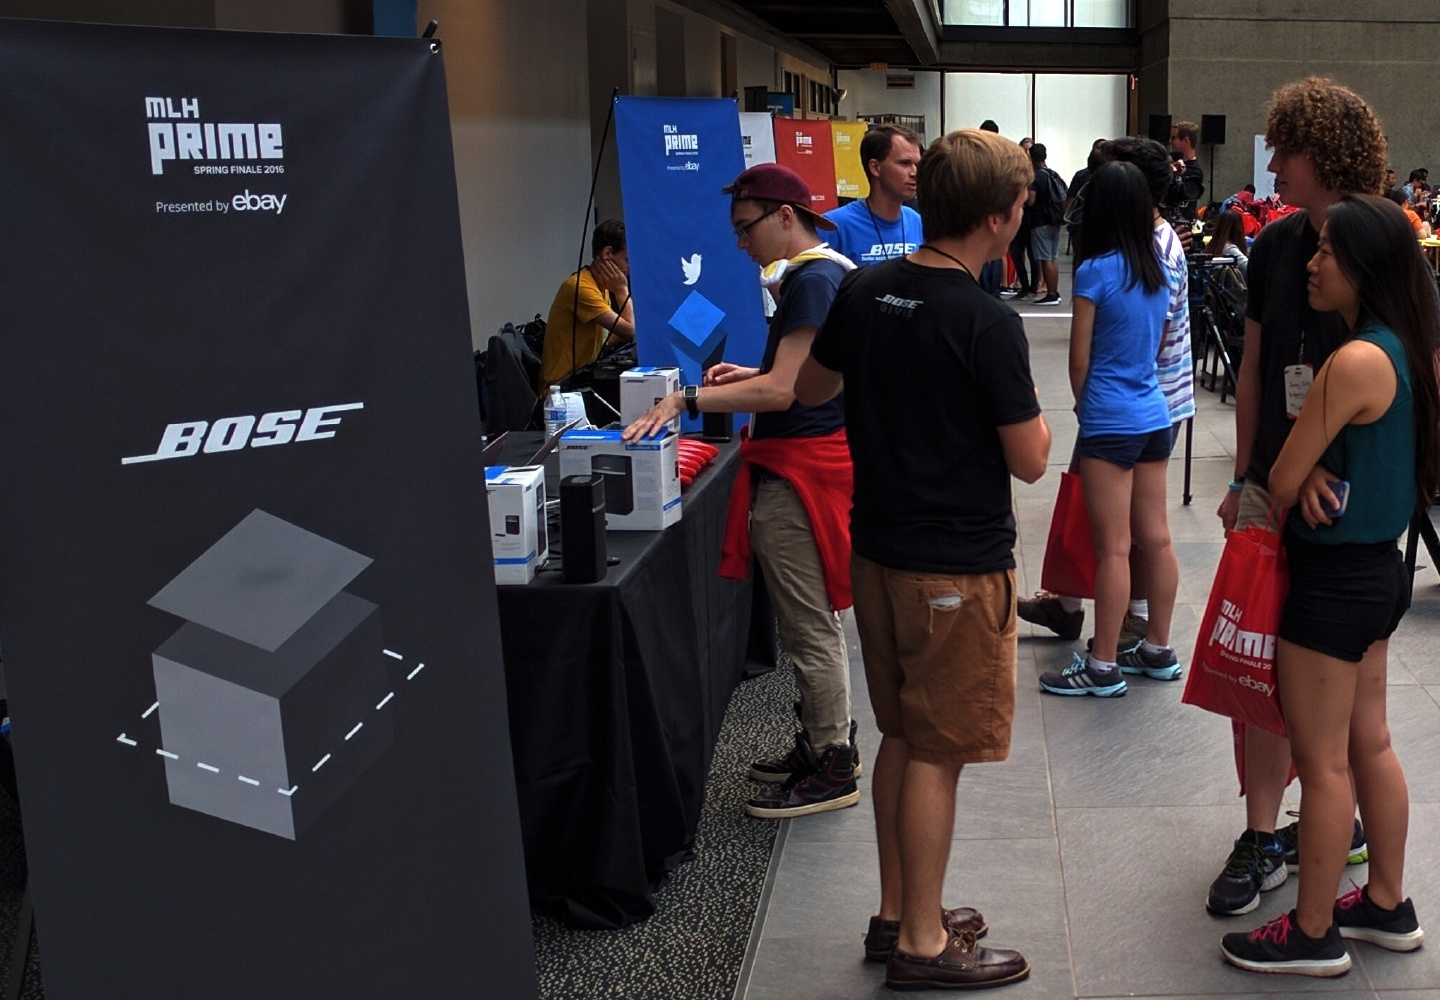 A crowd of people at a Bose hackathon booth.